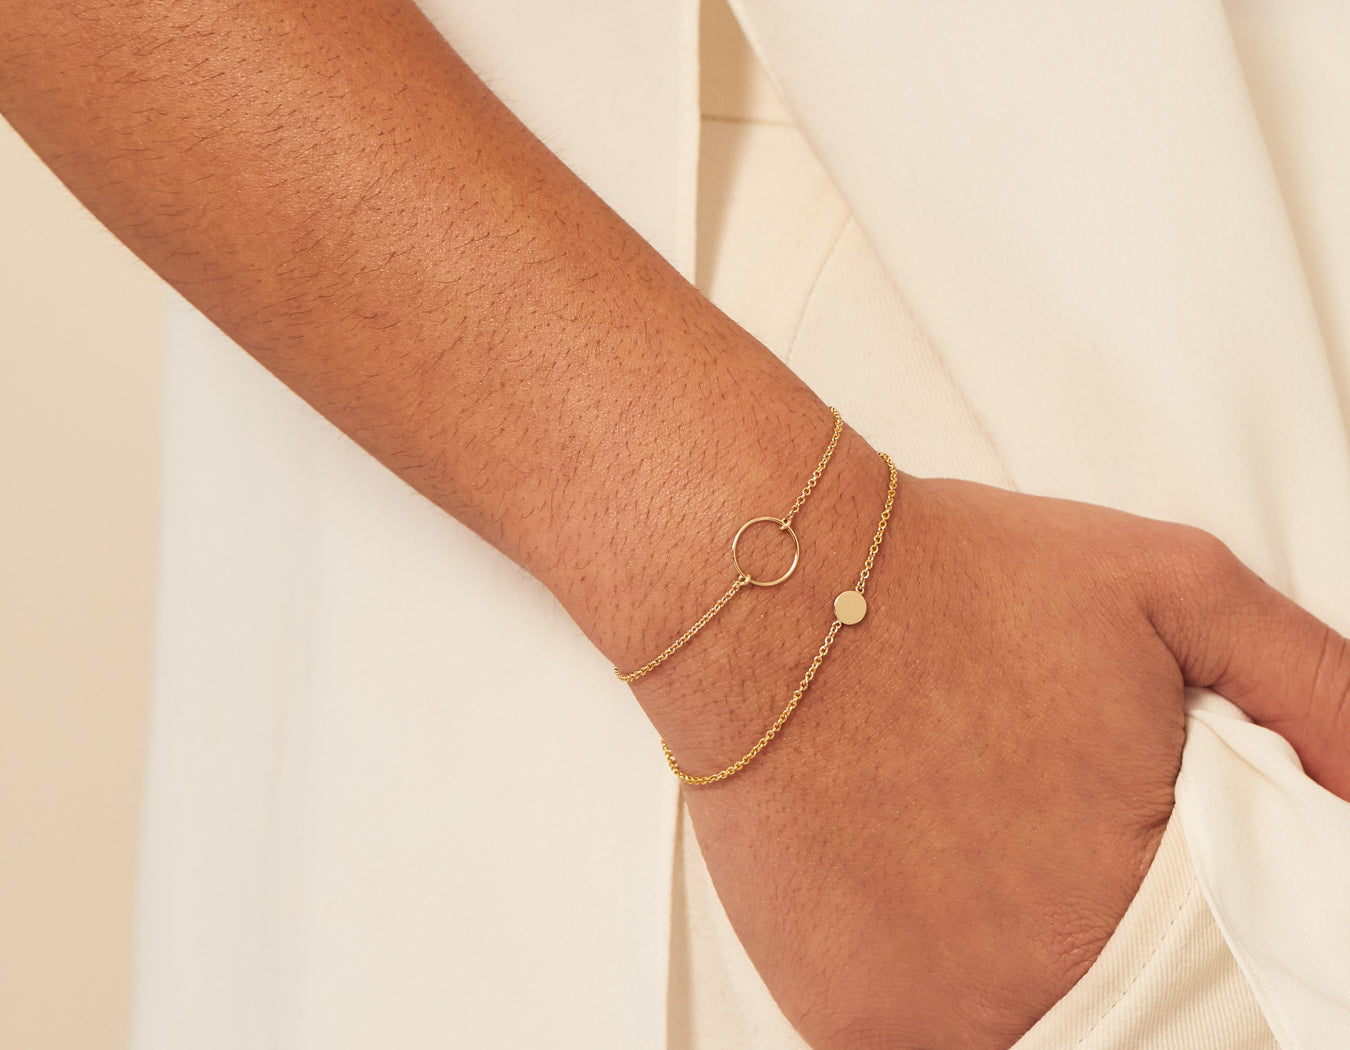 Modelled Small simple classic Initial Bracelet 14k yellow gold disk thin chain with circle bracelet Vrai and Oro, 14K Yellow Gold